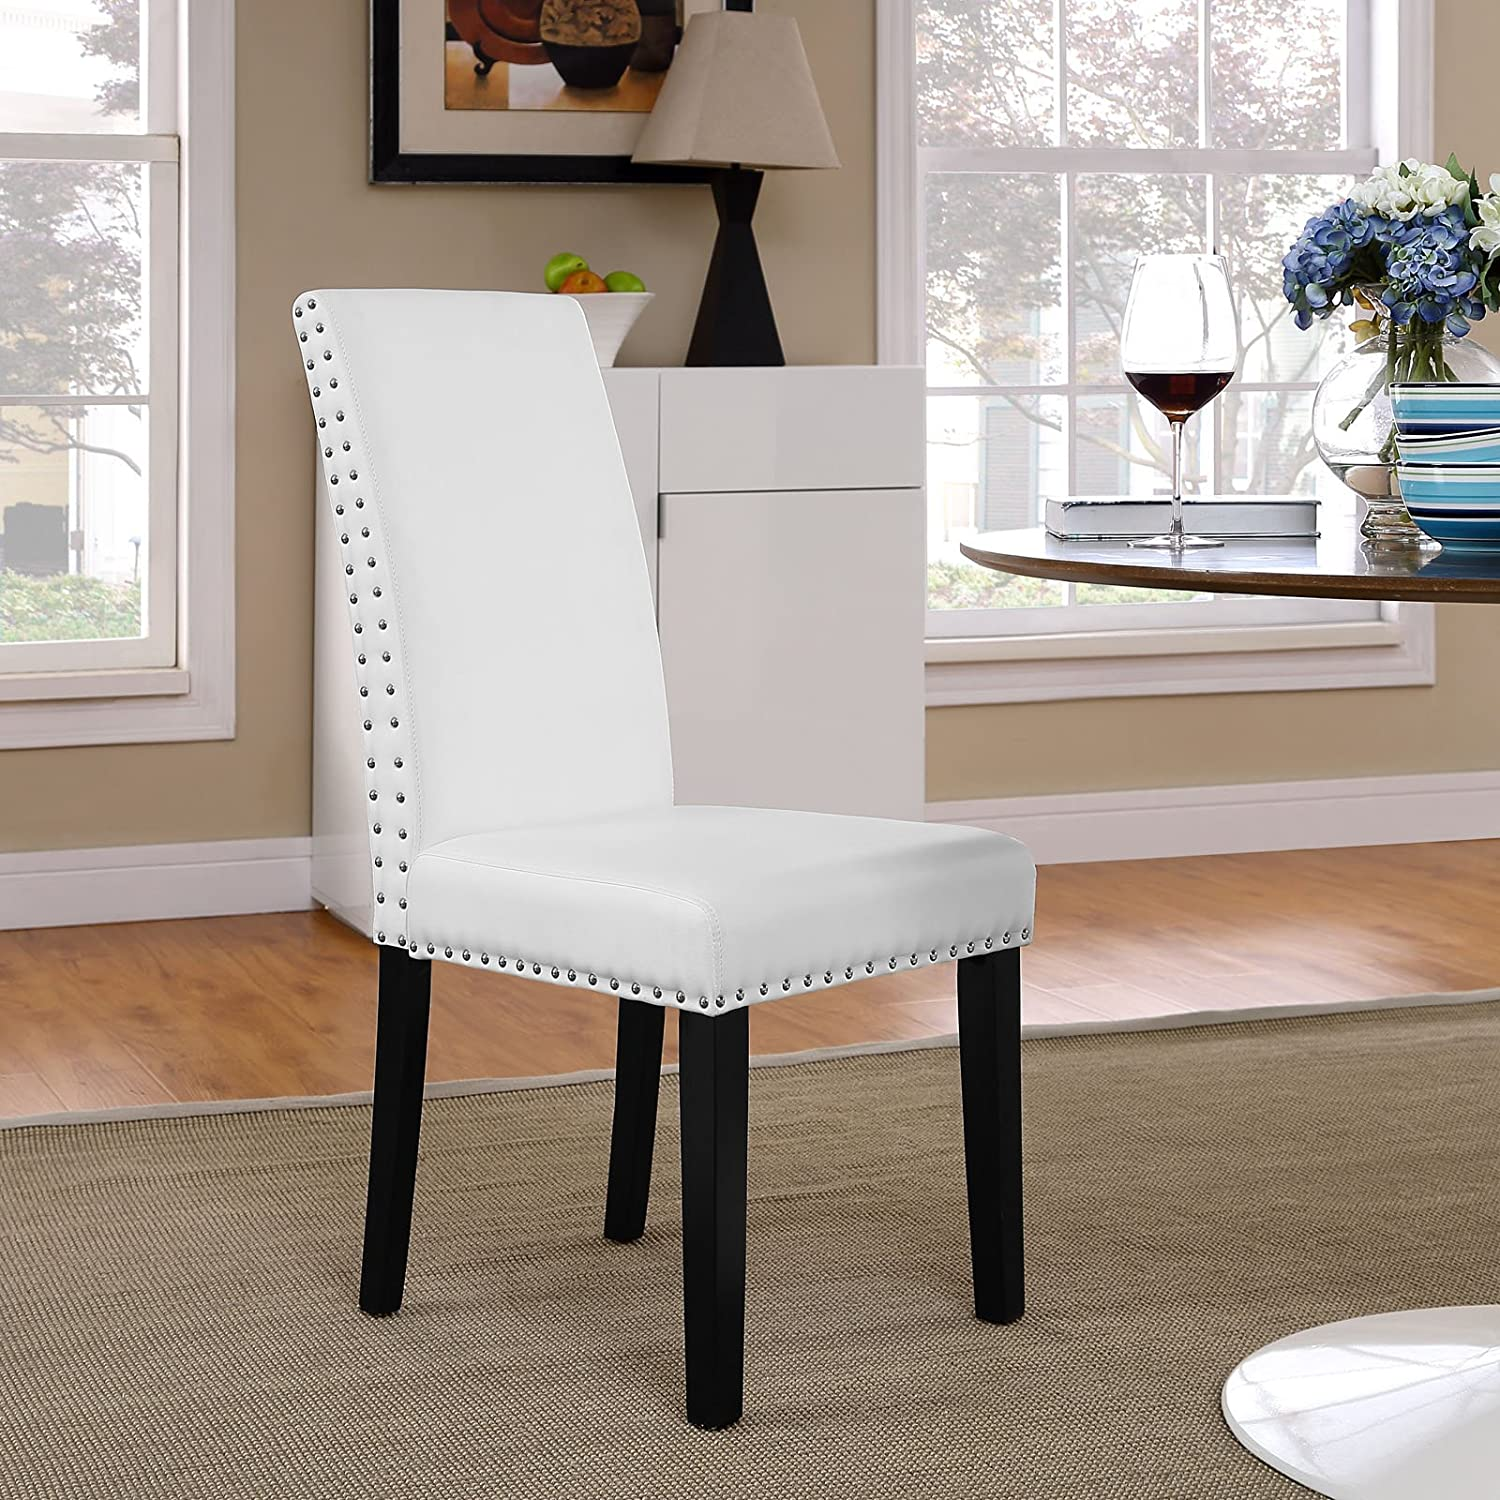 ektorp size extra bucket butterfly find chairs full chair wingback dining of slipcover white the for banquet furniture right easy best slipcovers dinning room etsy large